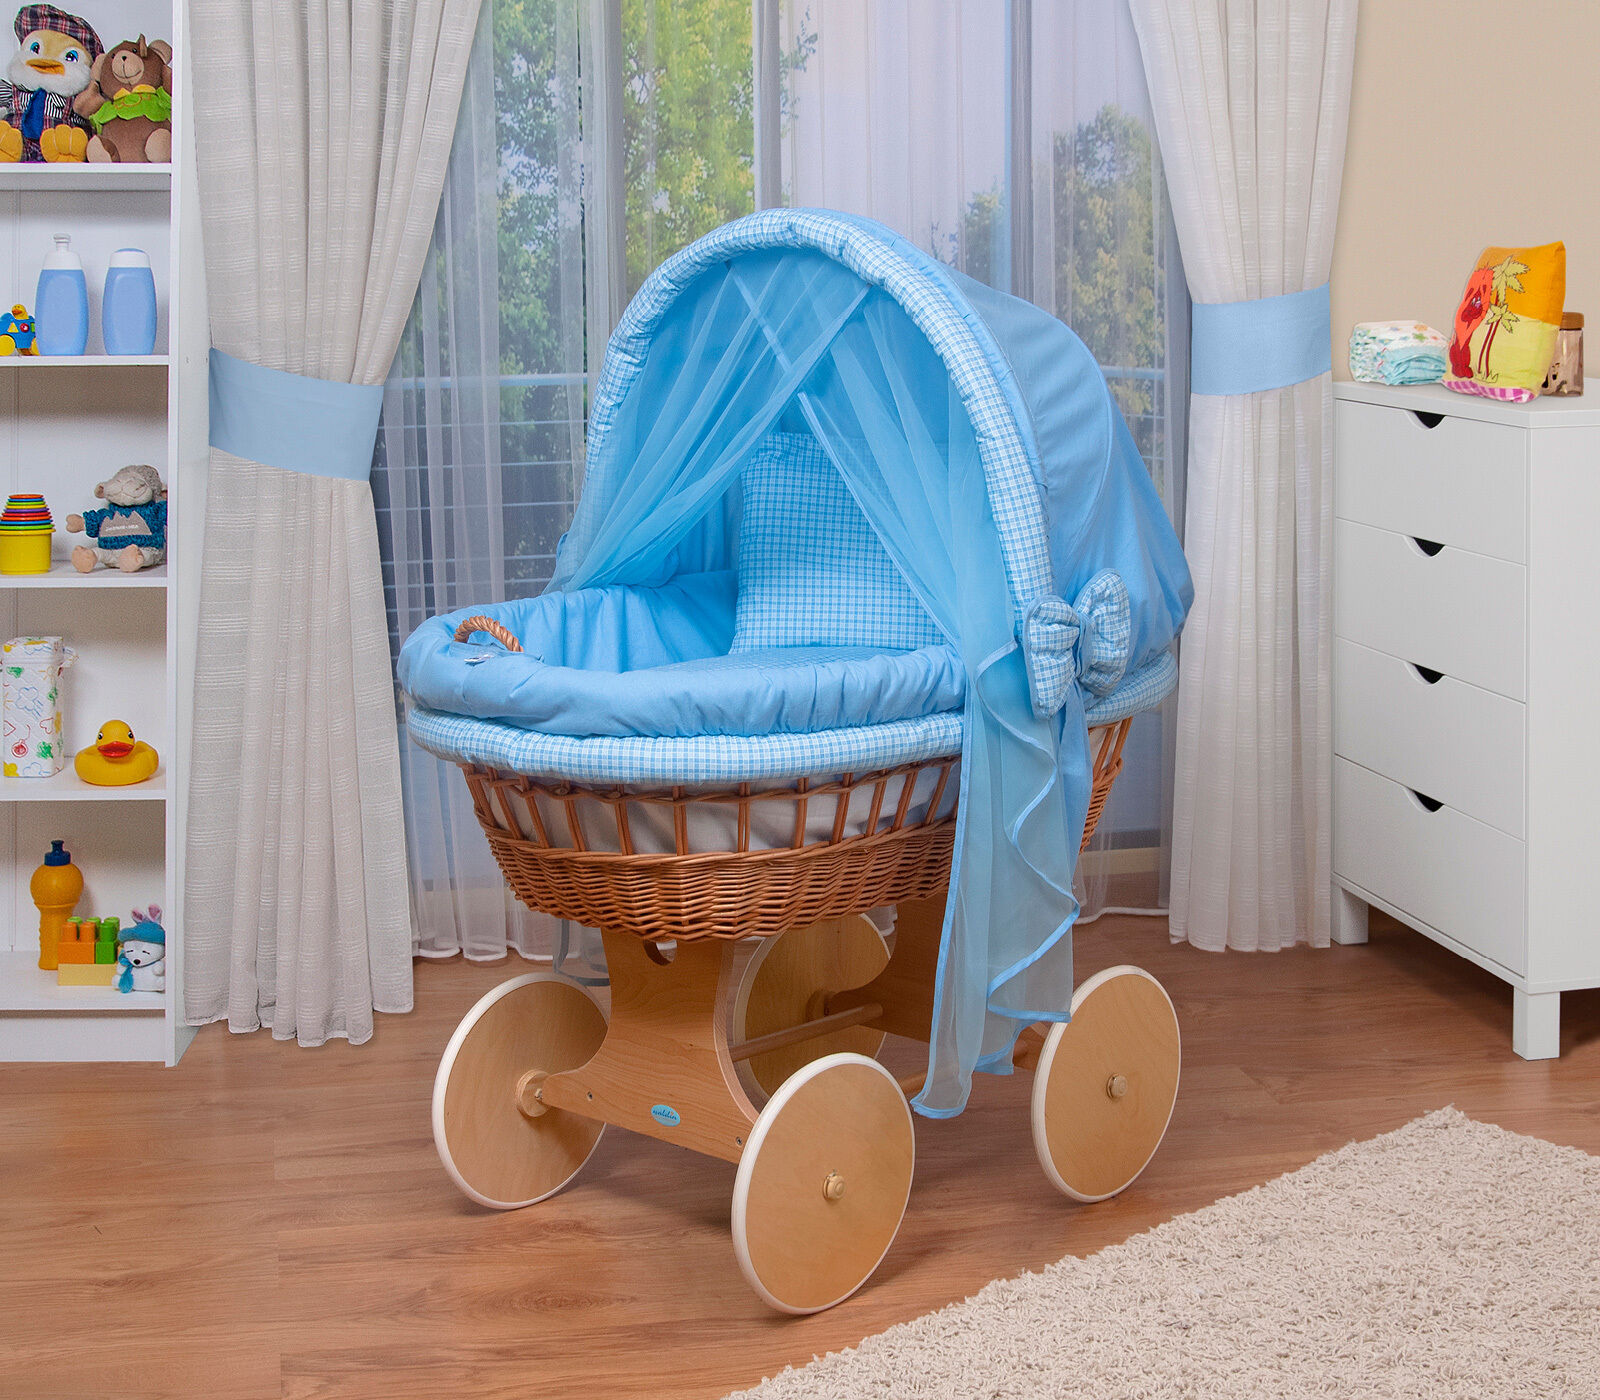 waldin baby bollerwagen stubenwagen xxl neu blau eur 129 99 picclick de. Black Bedroom Furniture Sets. Home Design Ideas